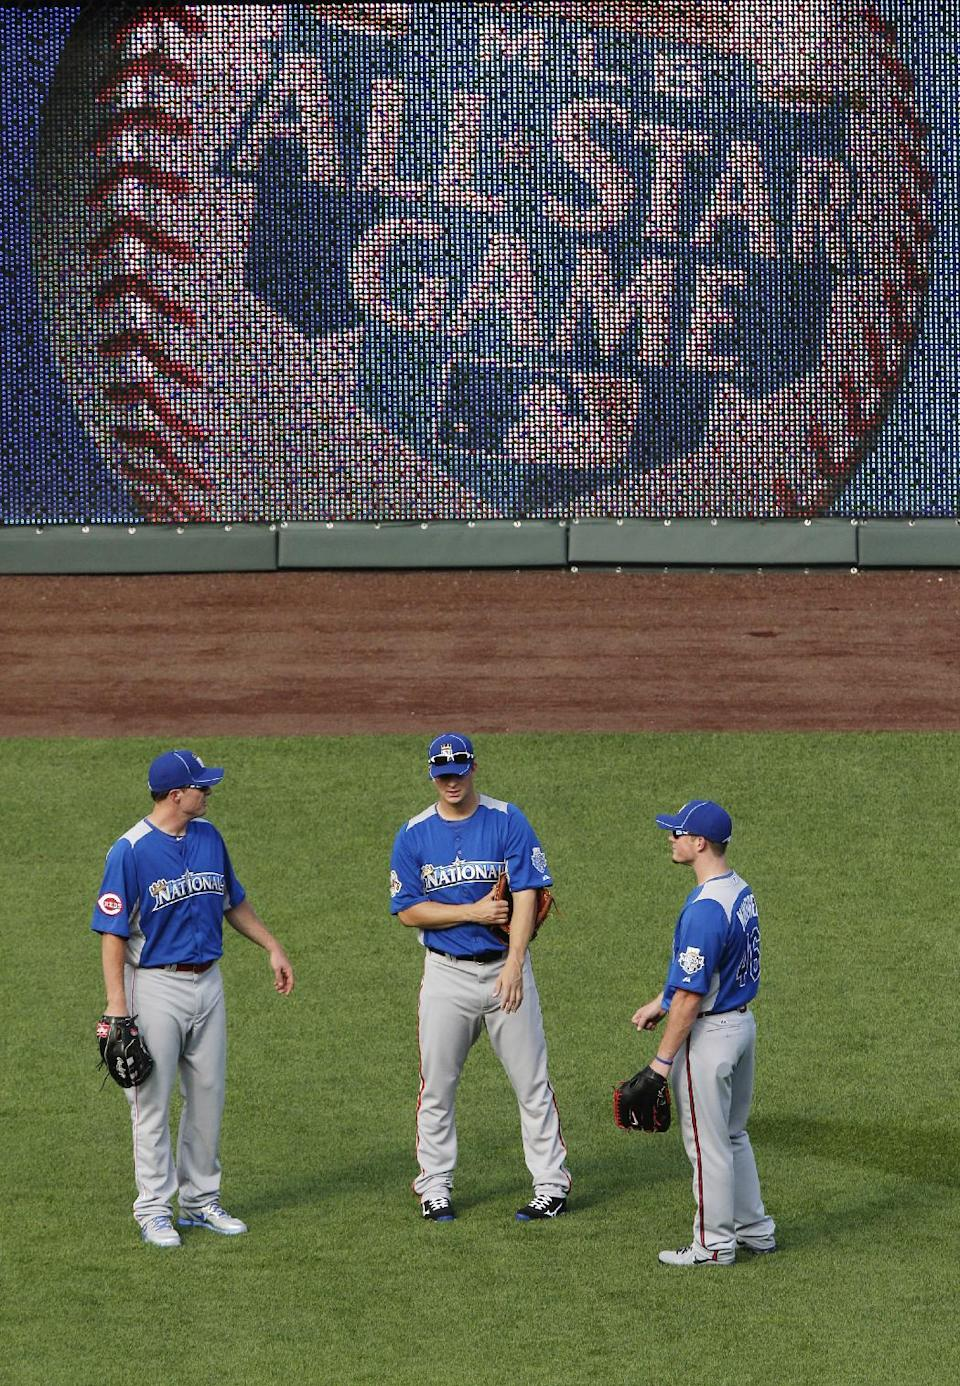 National League's Jay Bruce, of the Cincinnati Reds, Matt Cain, of the San Francisco Giants, and Craig Kimbrel, of the Atlanta Braves, talk in the outfield during MLB All-Star baseball batting practice, Monday, July 9, 2012, in Kansas City, Mo. (AP Photo/Charlie Riedel)